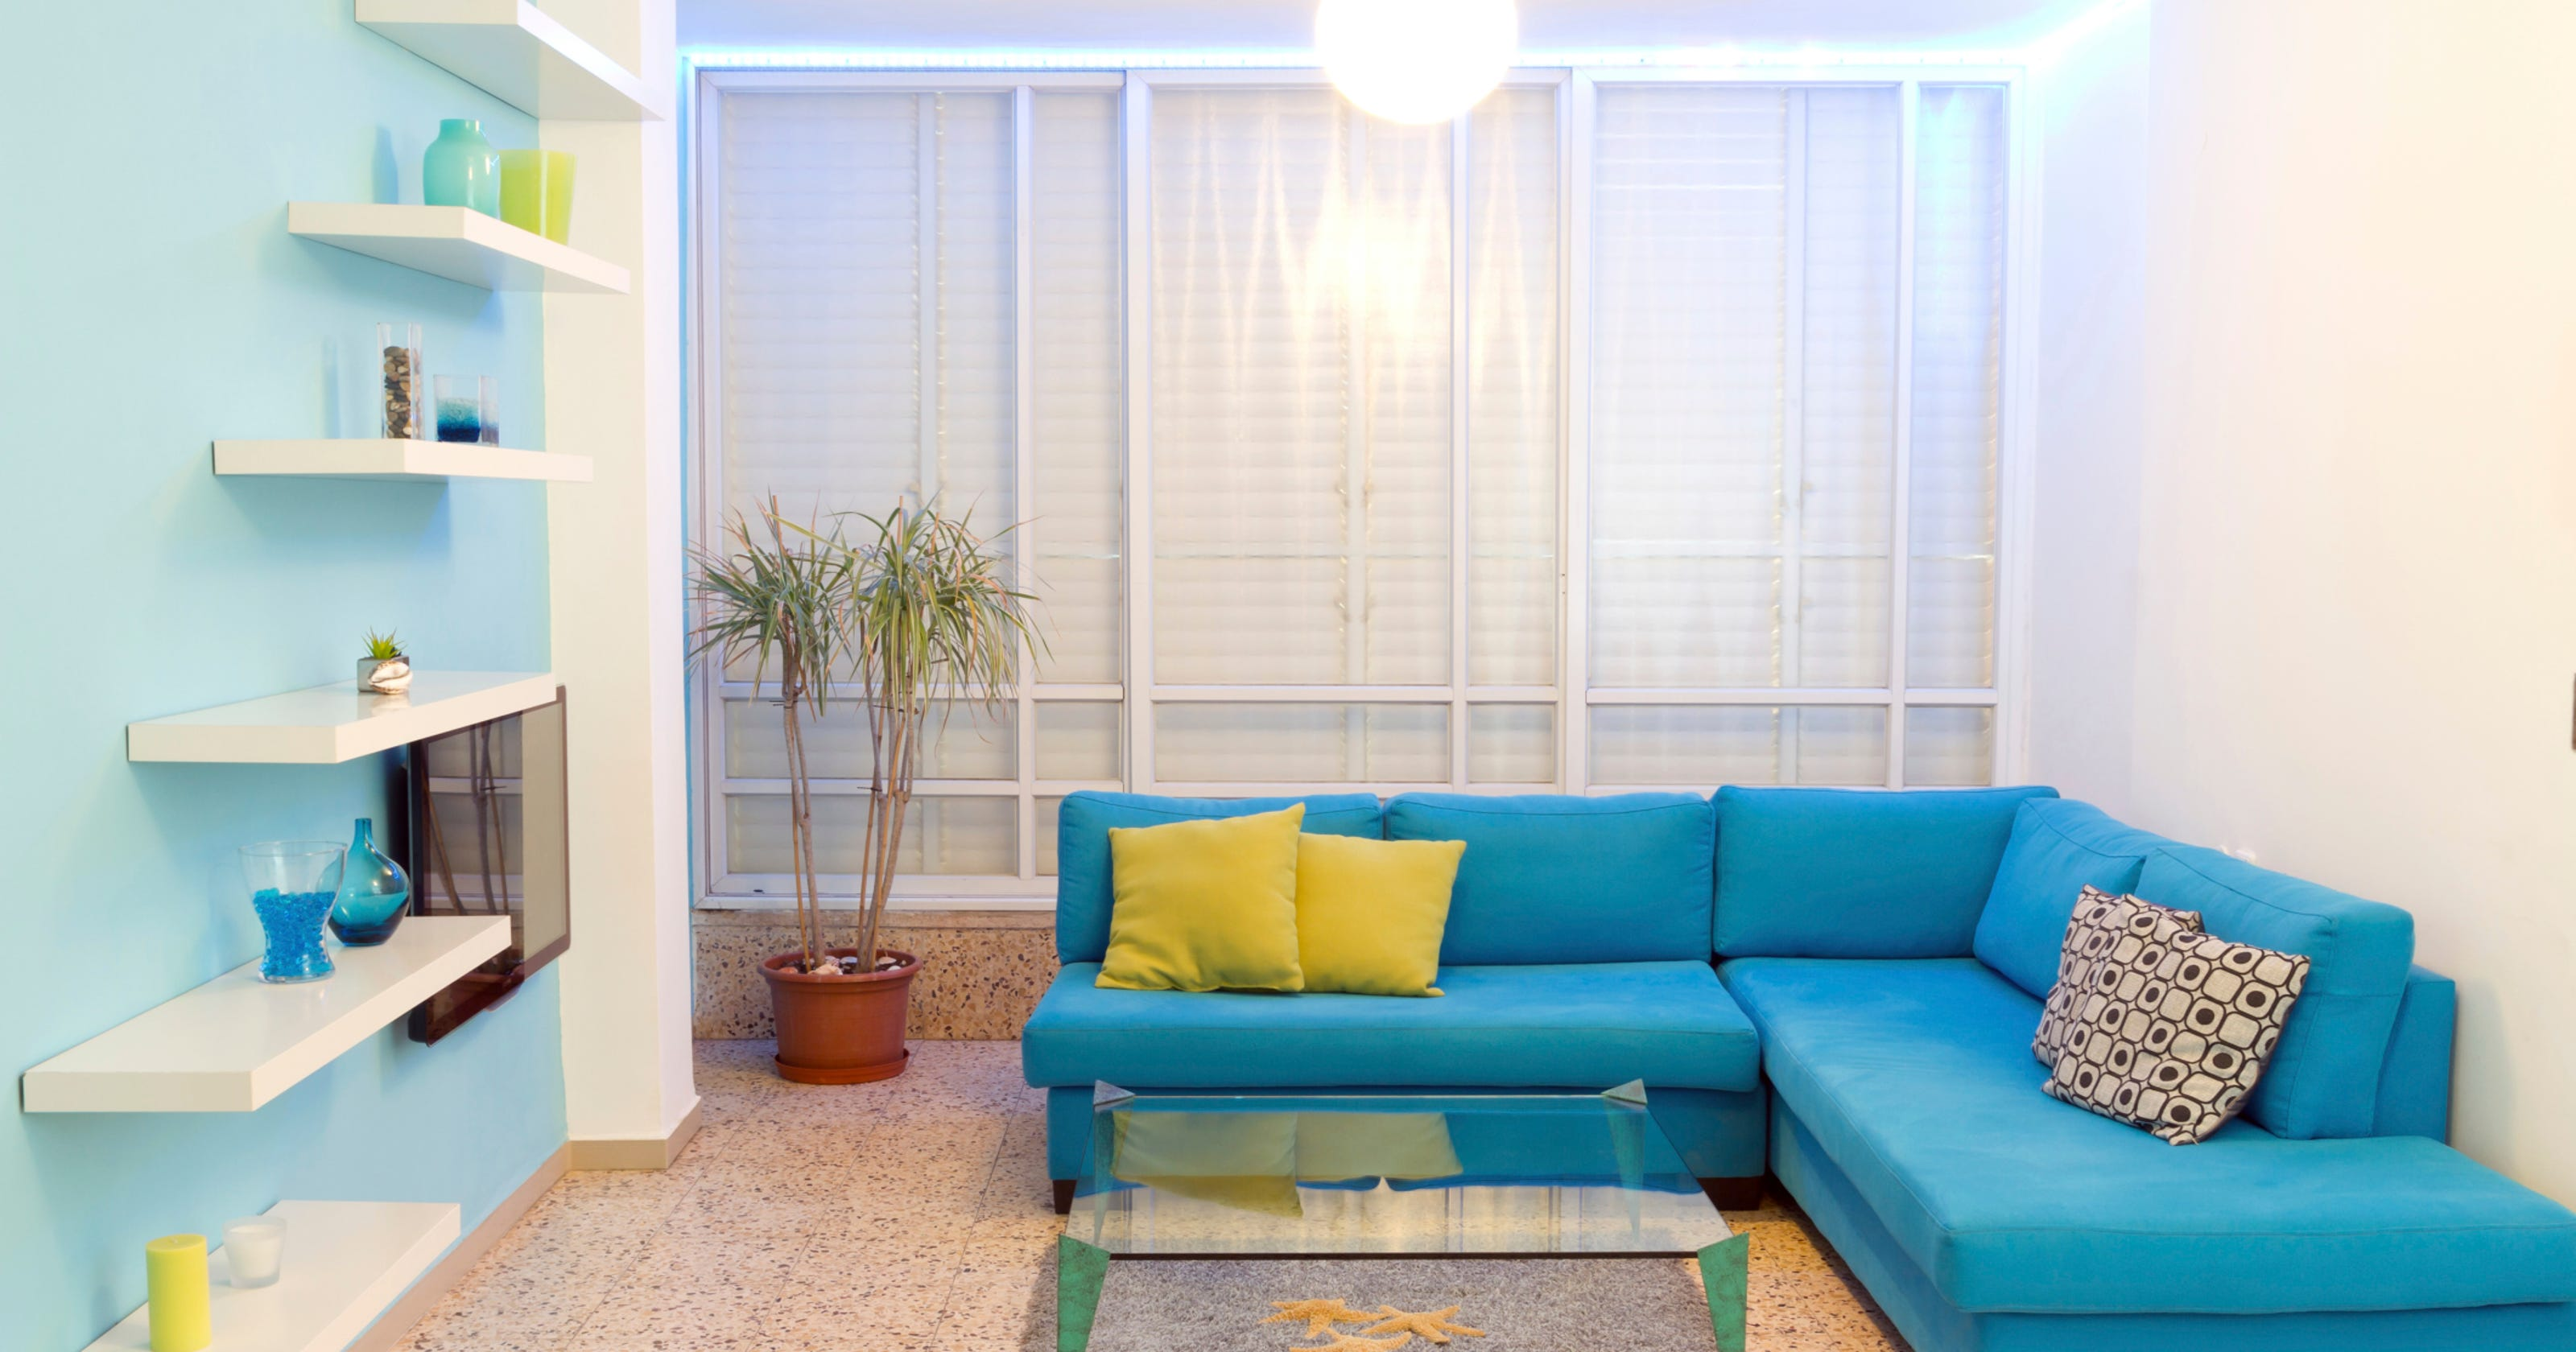 Create positive energy in your home by using feng shui